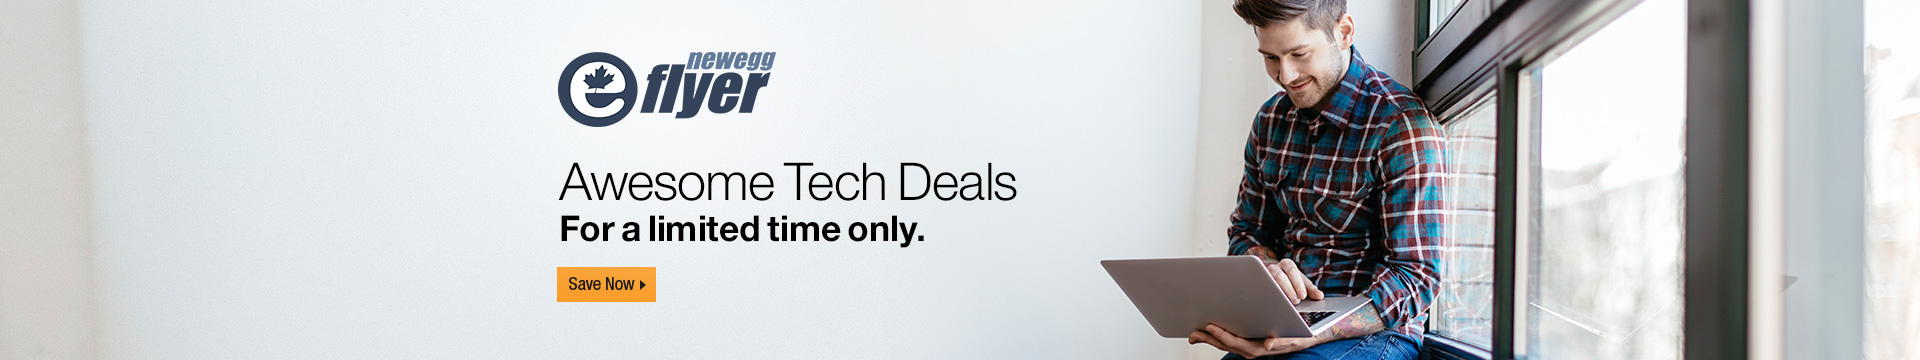 Awesome Tech Deals